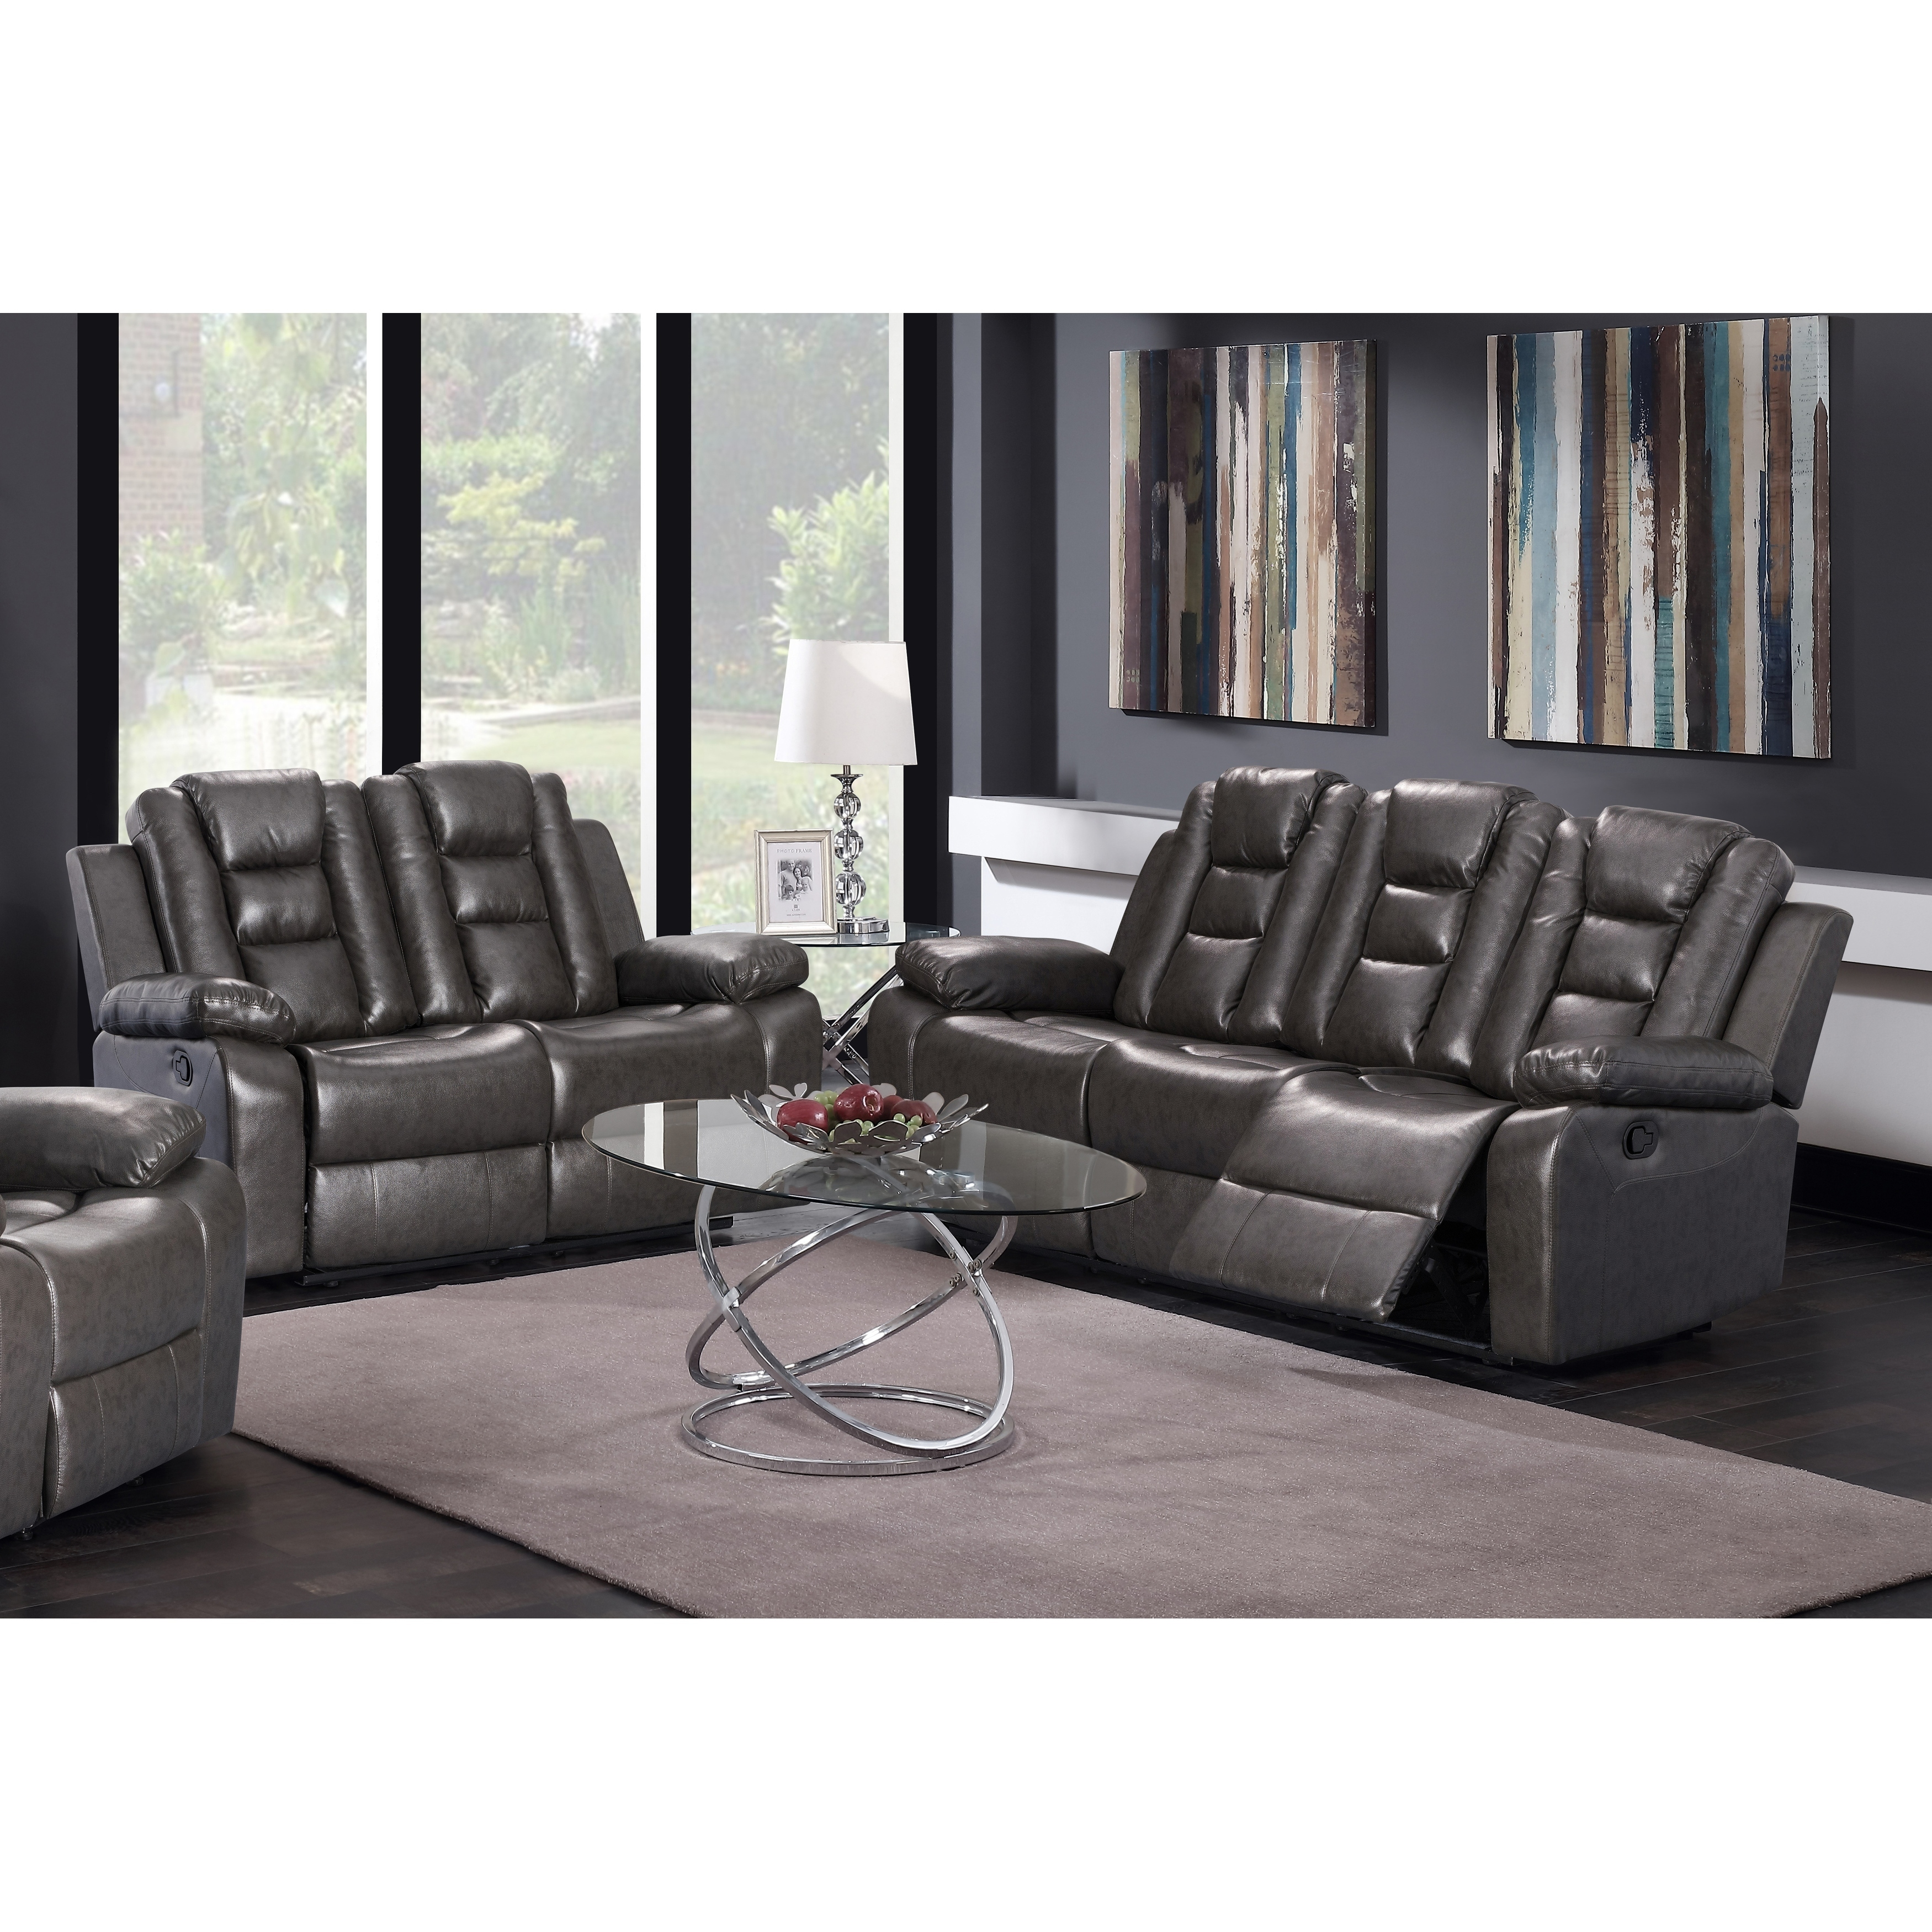 Gtu furniture modern contemporary sleek lever faux leather reclining sofa couch loveseat sofás reclinables para adultos walmart com